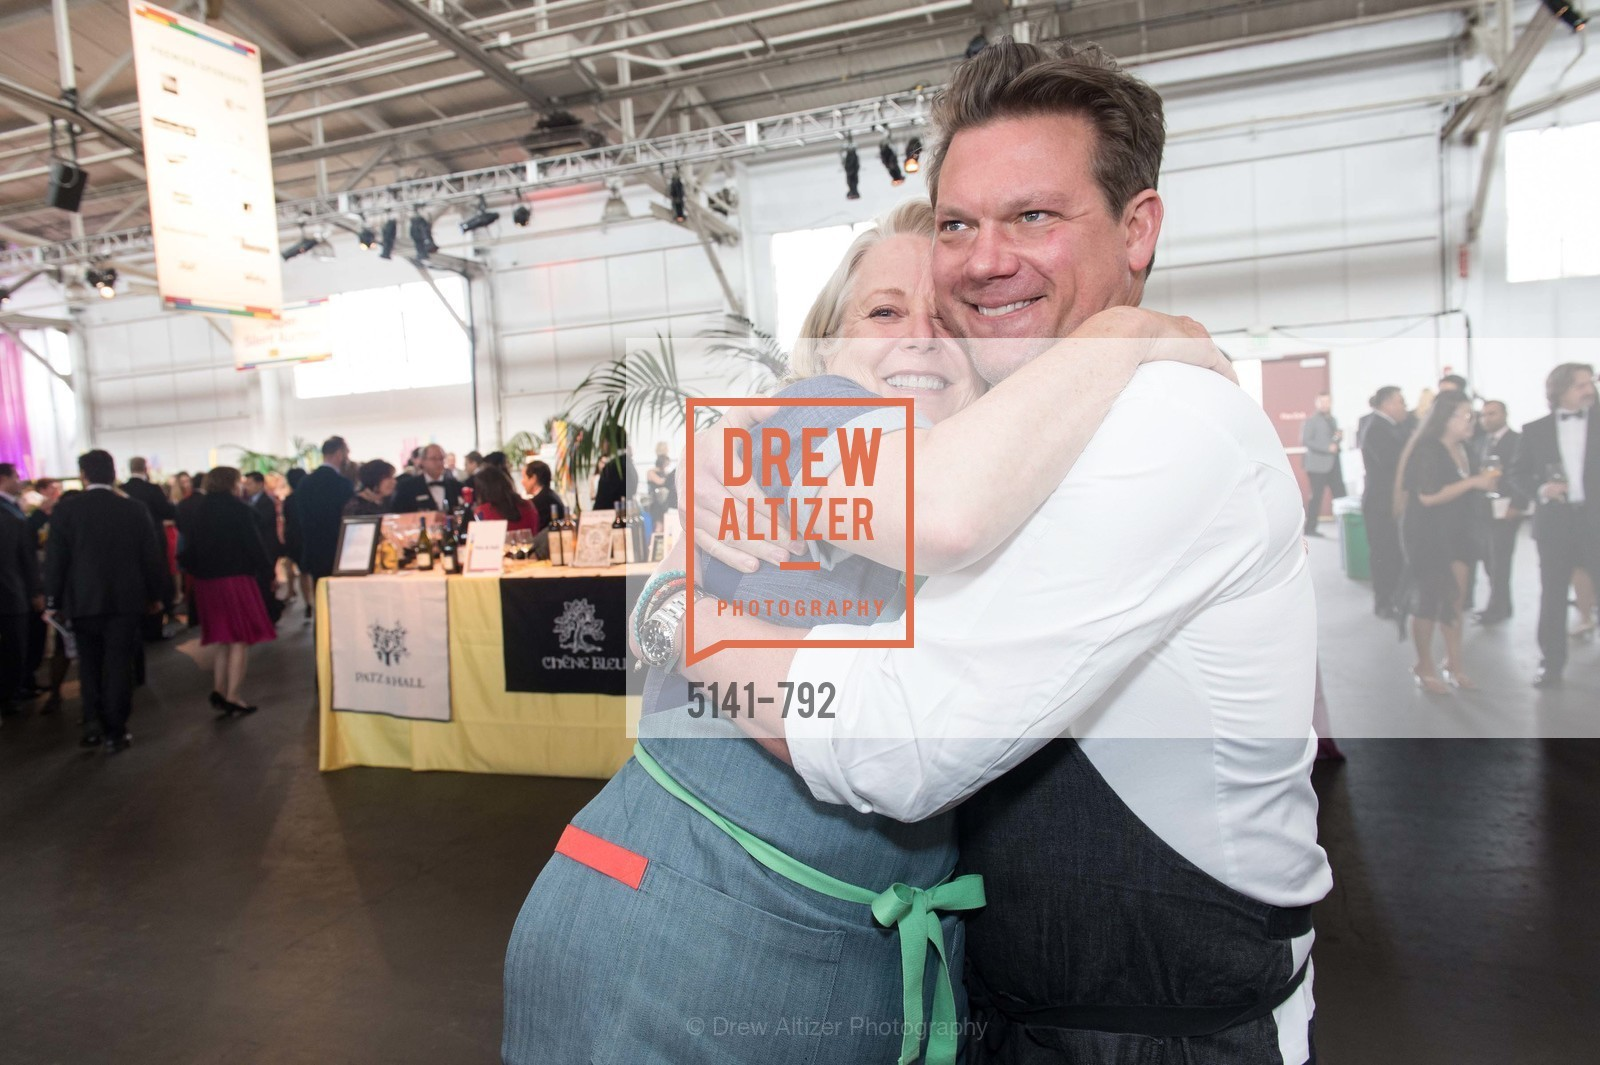 Nancy Oakes, Tyler Florence, MEALS ON WHEELS OF SAN FRANCISCO'S 28th Annual Star Chefs and Vintners Gala, US, April 19th, 2015,Drew Altizer, Drew Altizer Photography, full-service agency, private events, San Francisco photographer, photographer california